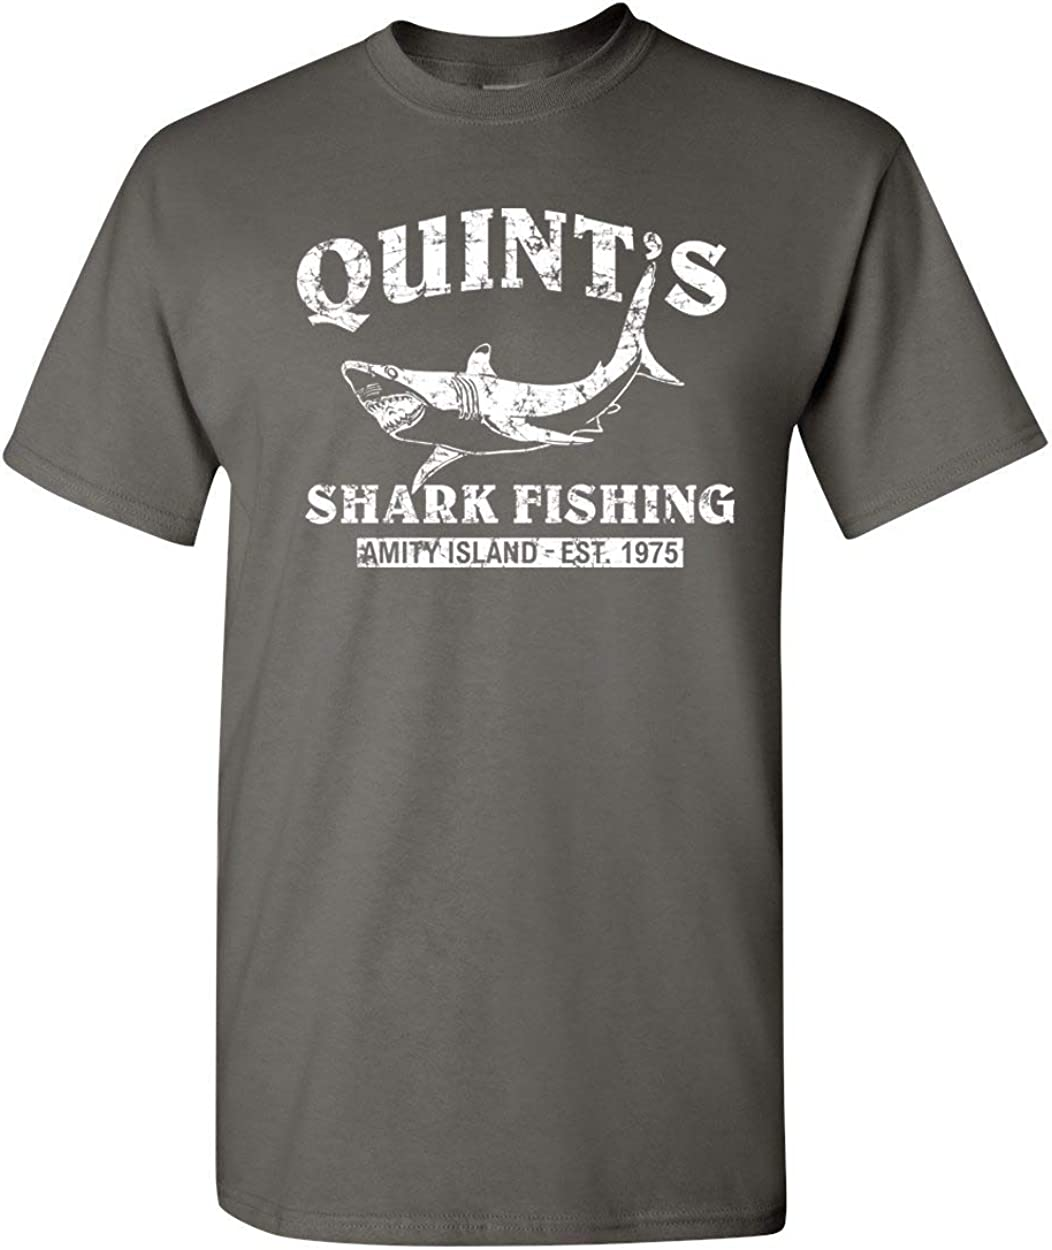 Quint's Shark Fishing - Jaws Retro Men's T-Shirt